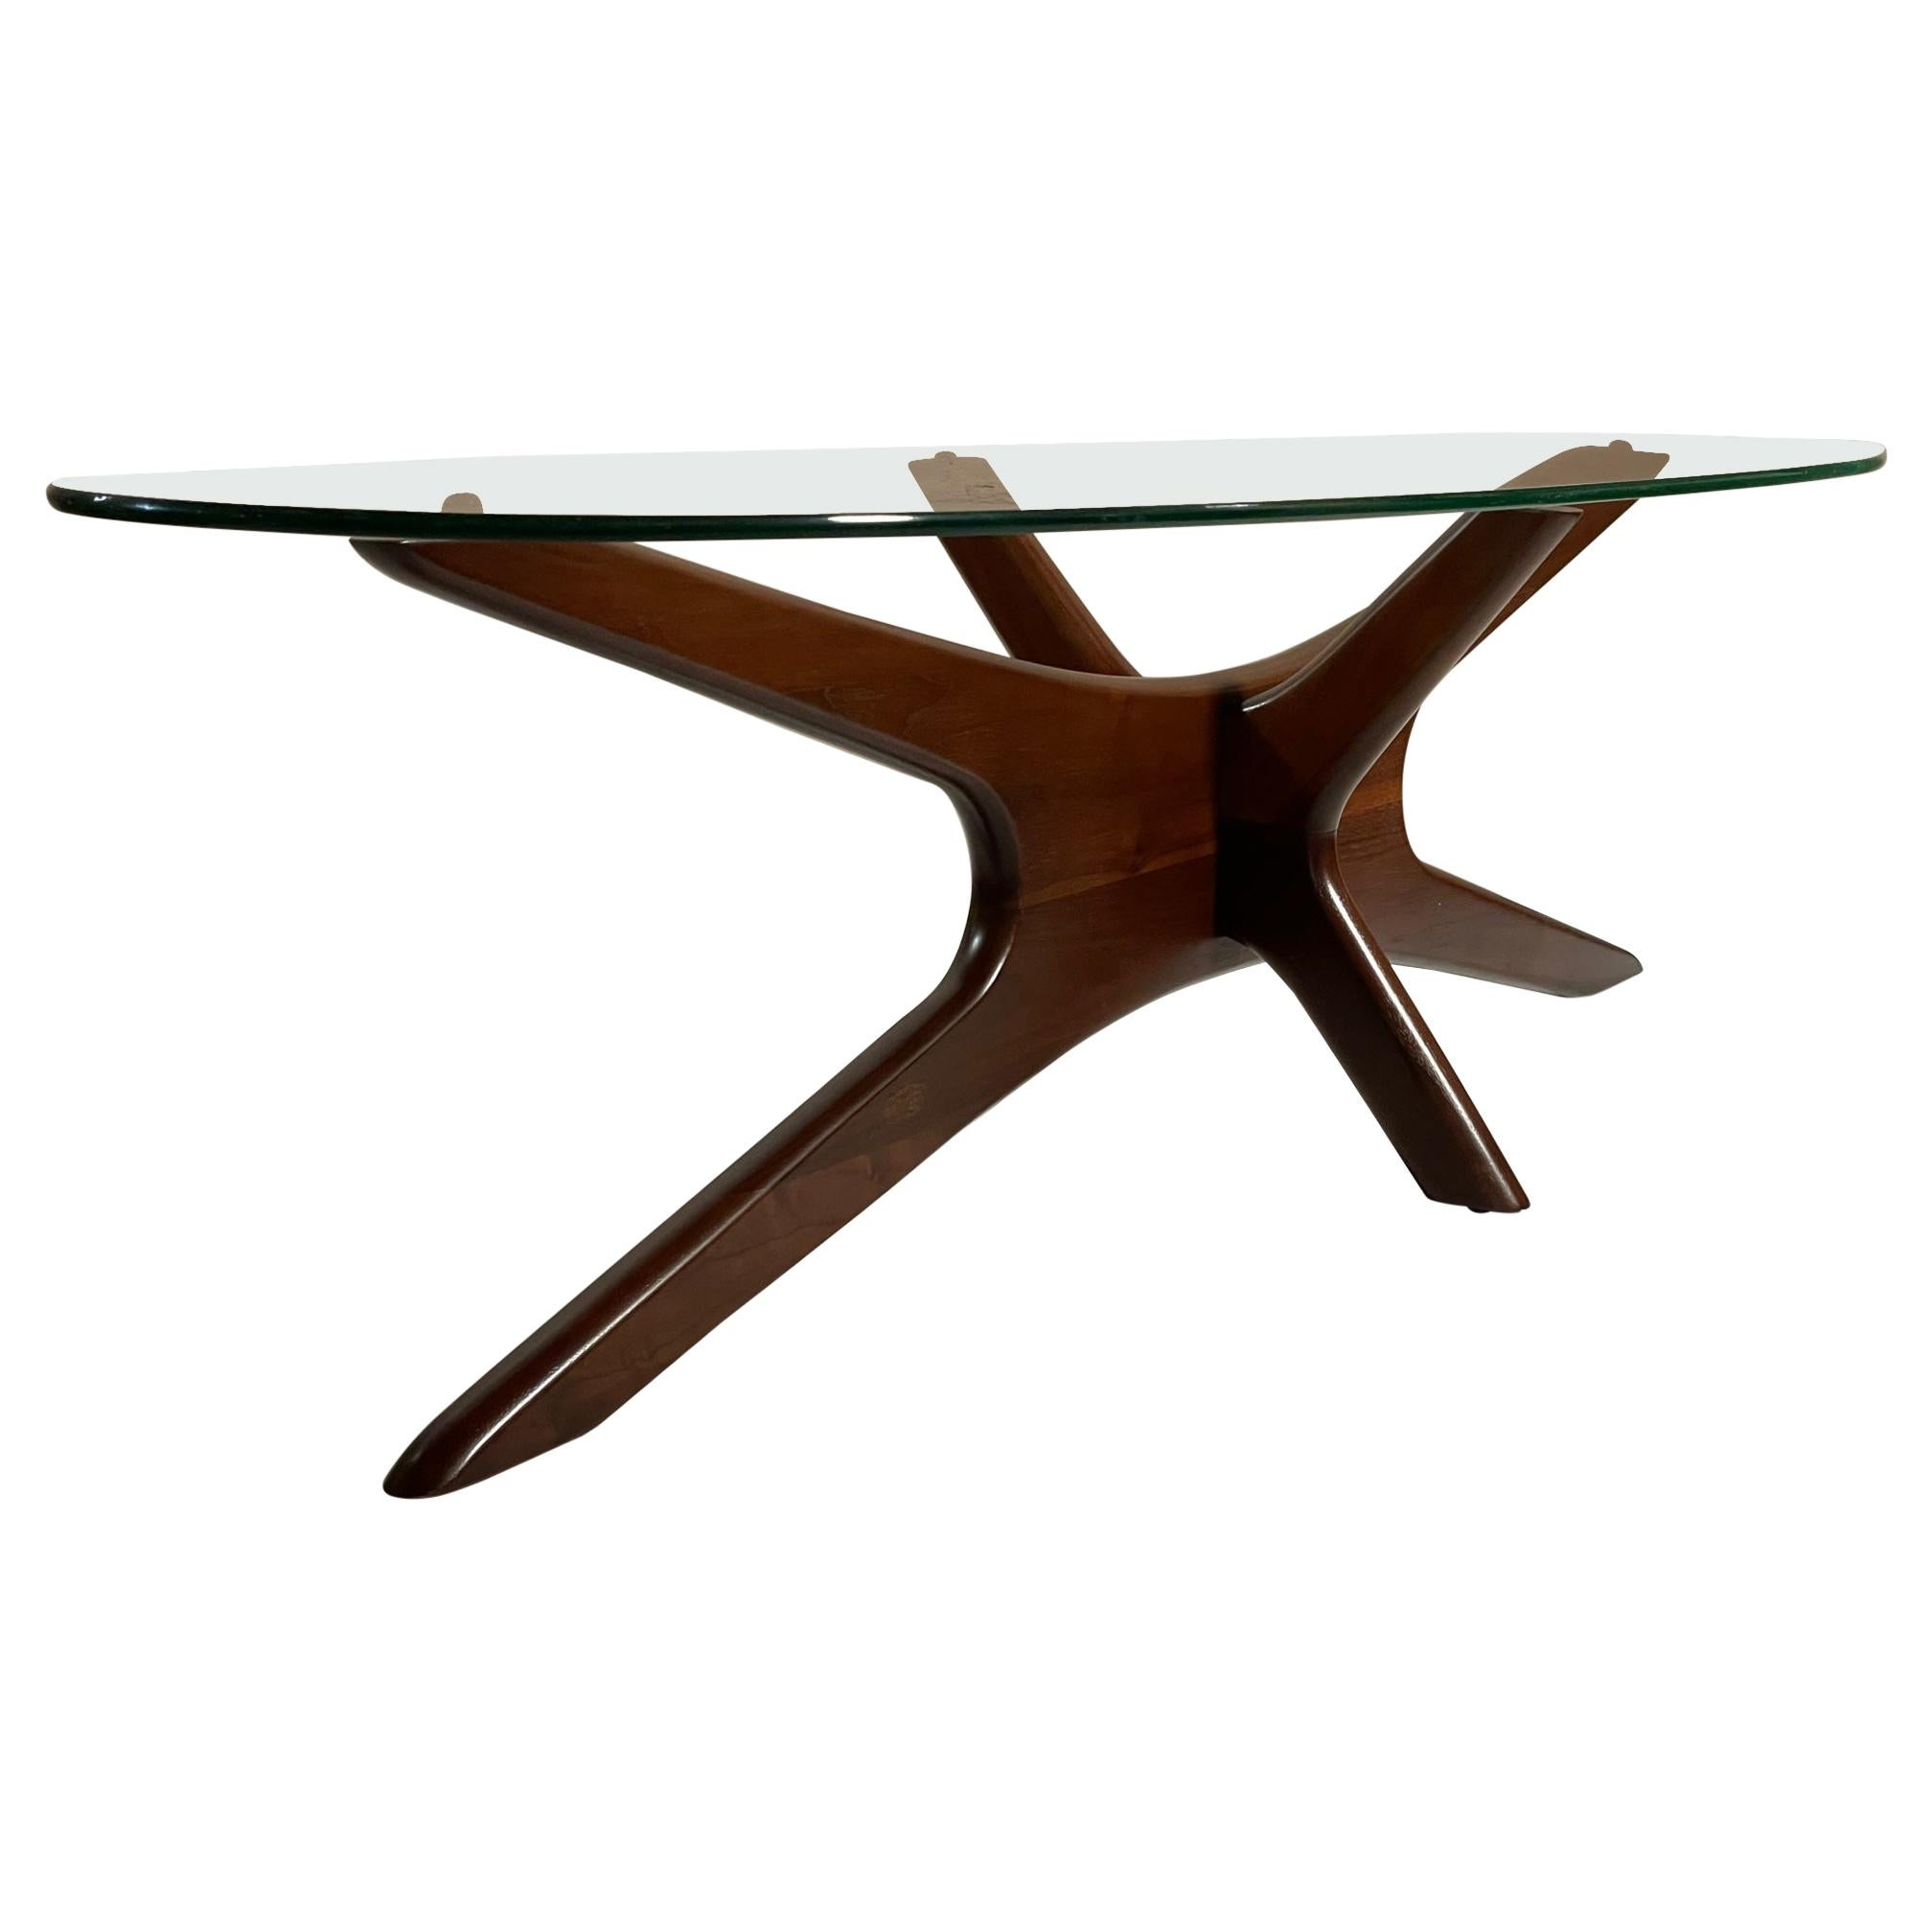 Adrian Pearsall Sculpted Coffee Table Walnut and Glass